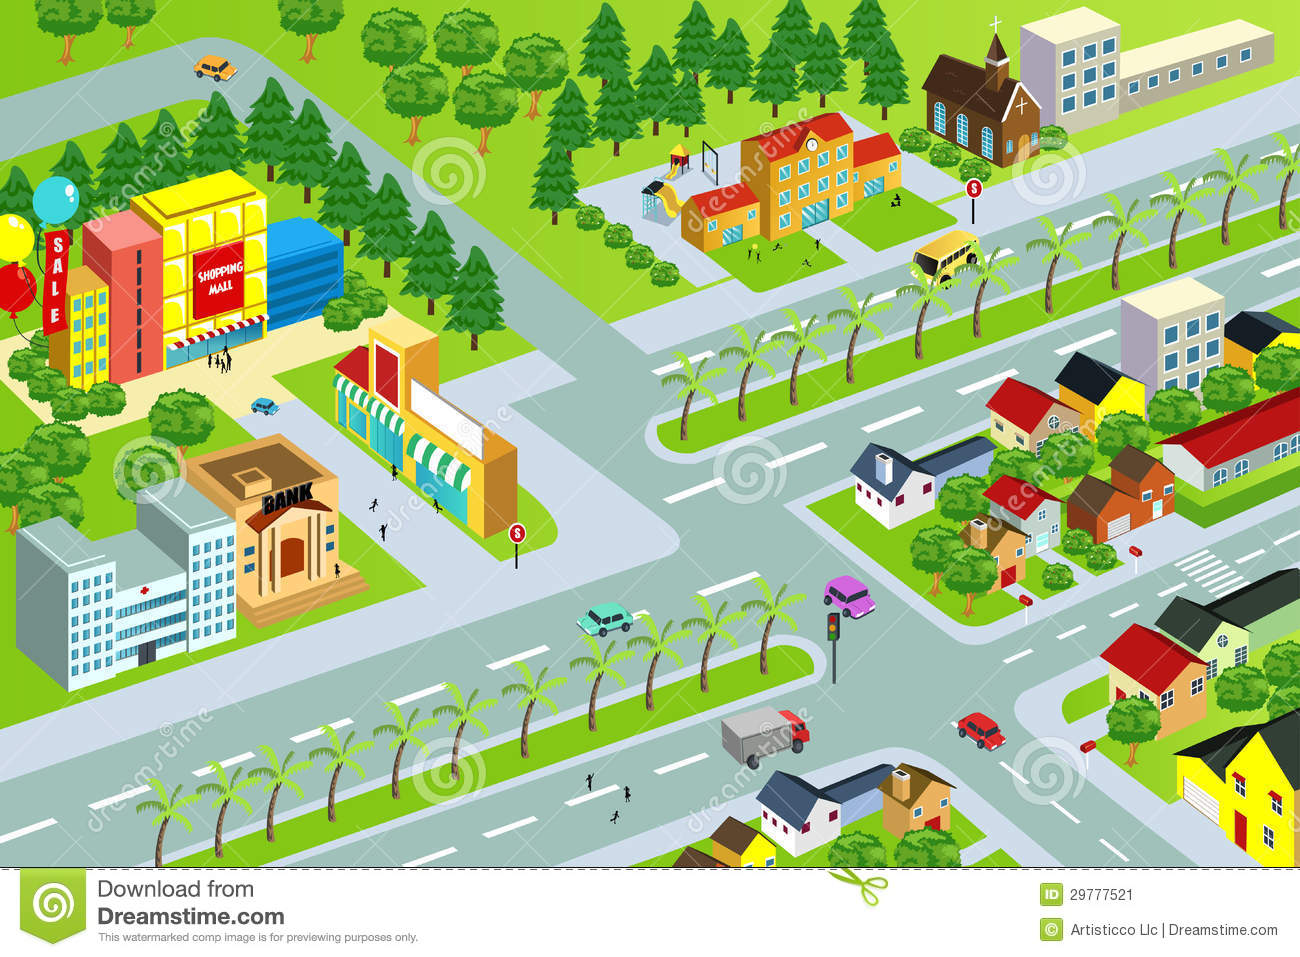 City road map clipart picture black and white City road map clipart - ClipartFest picture black and white